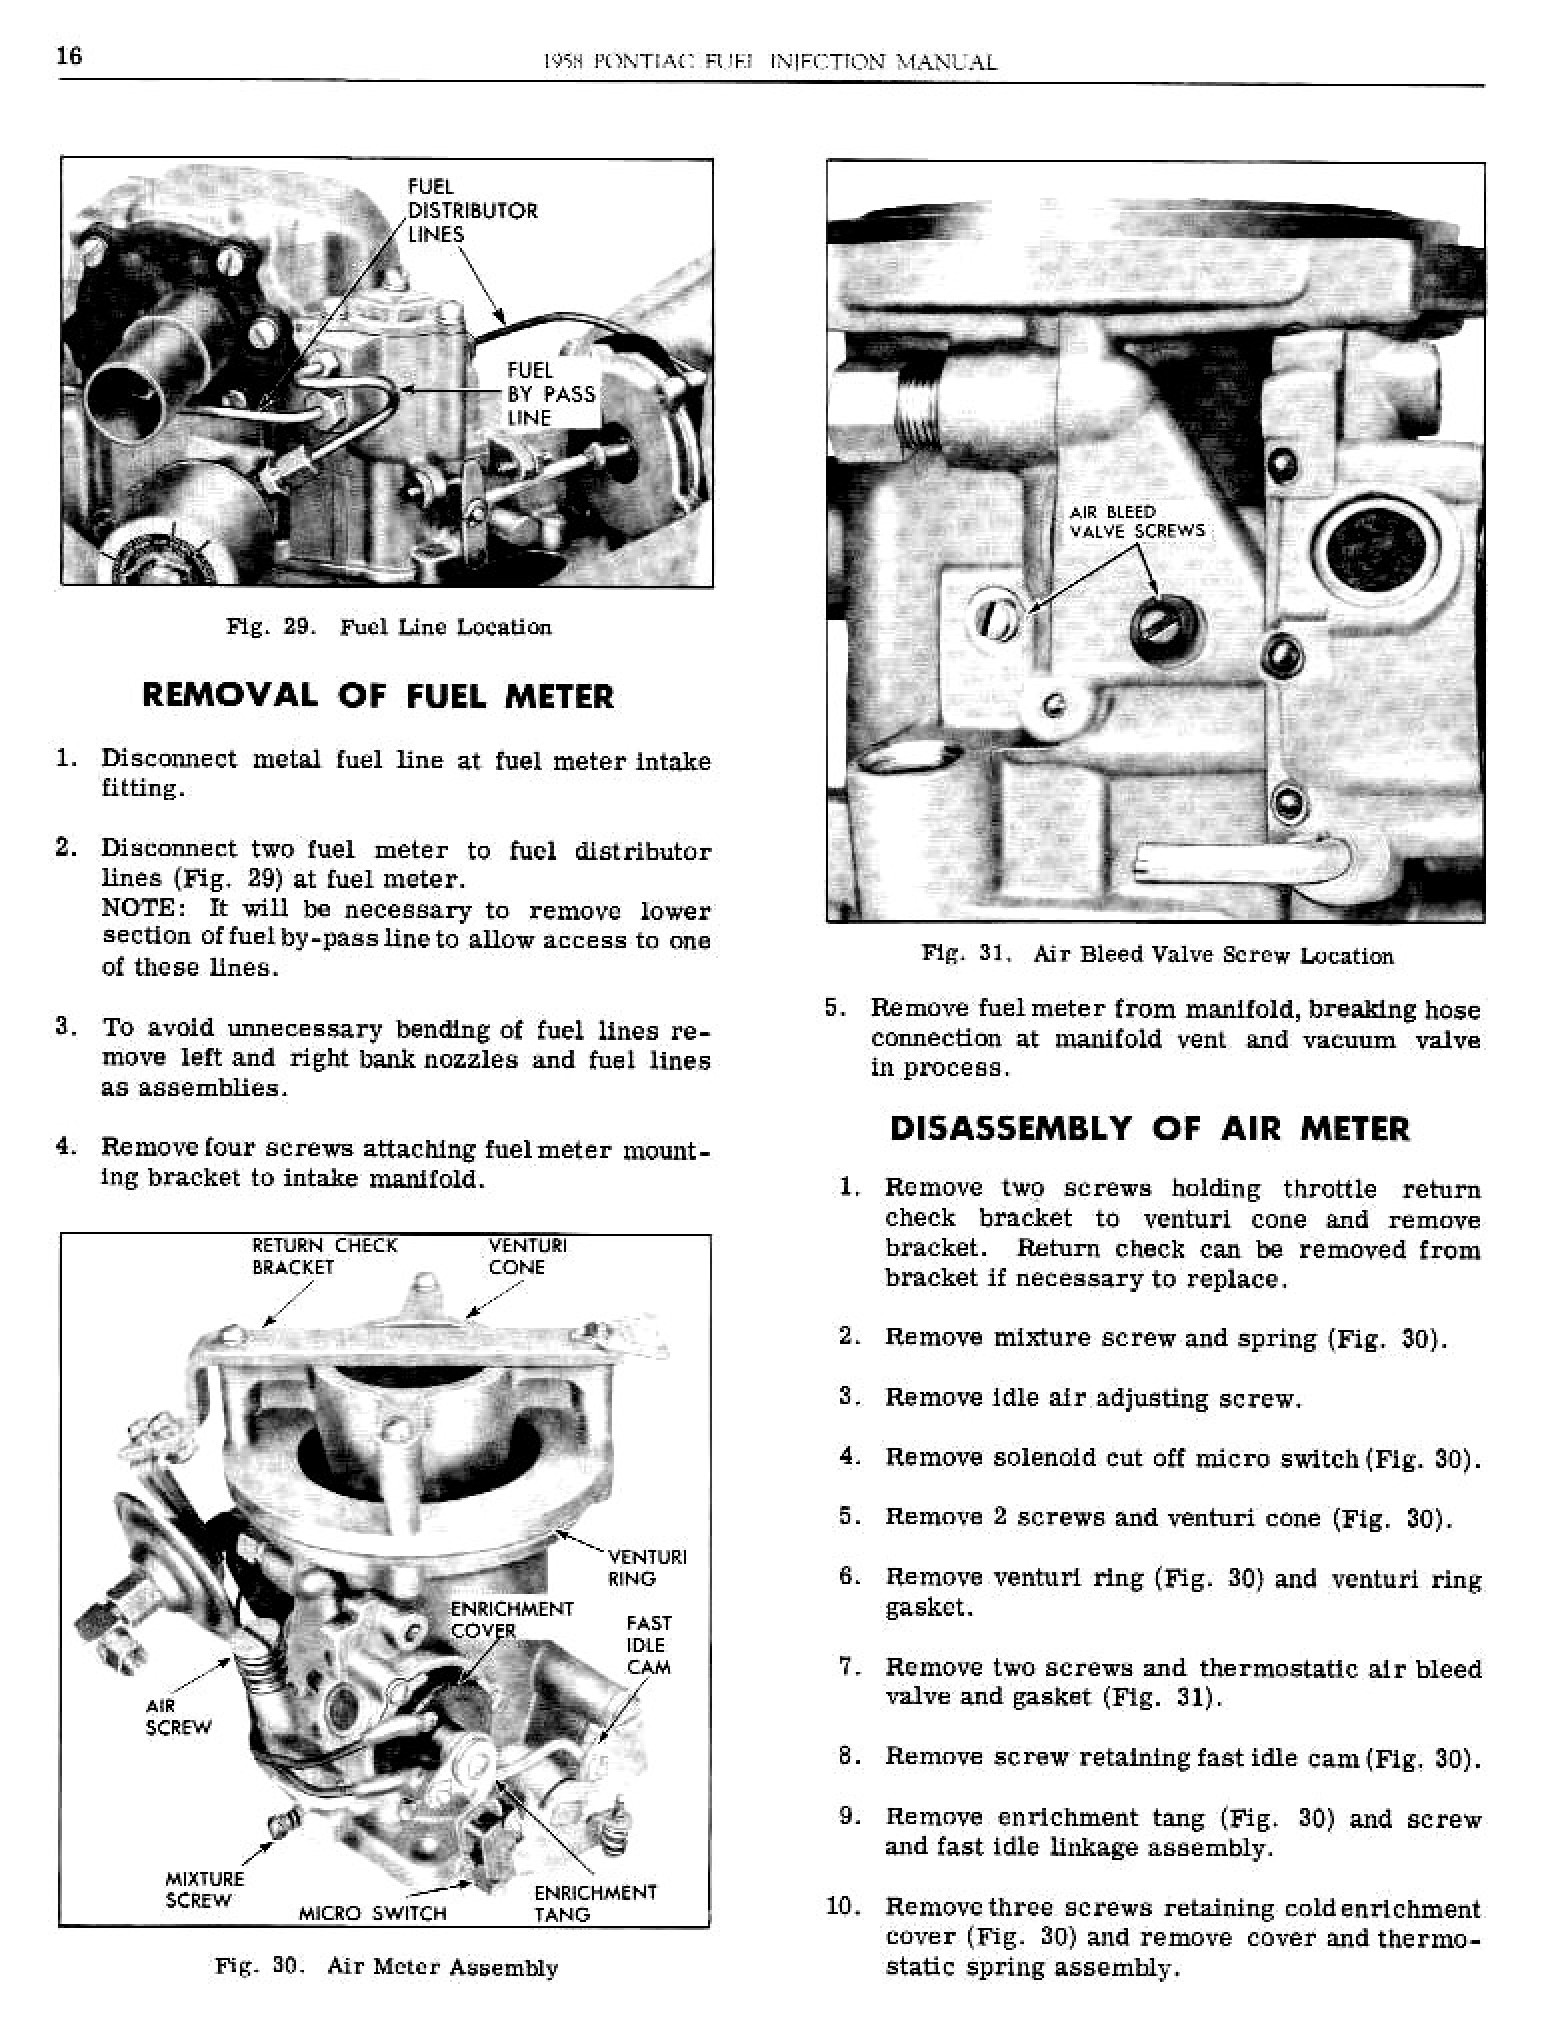 1958 Pontiac Shop Manual- Fuel Injection Page 17 of 25